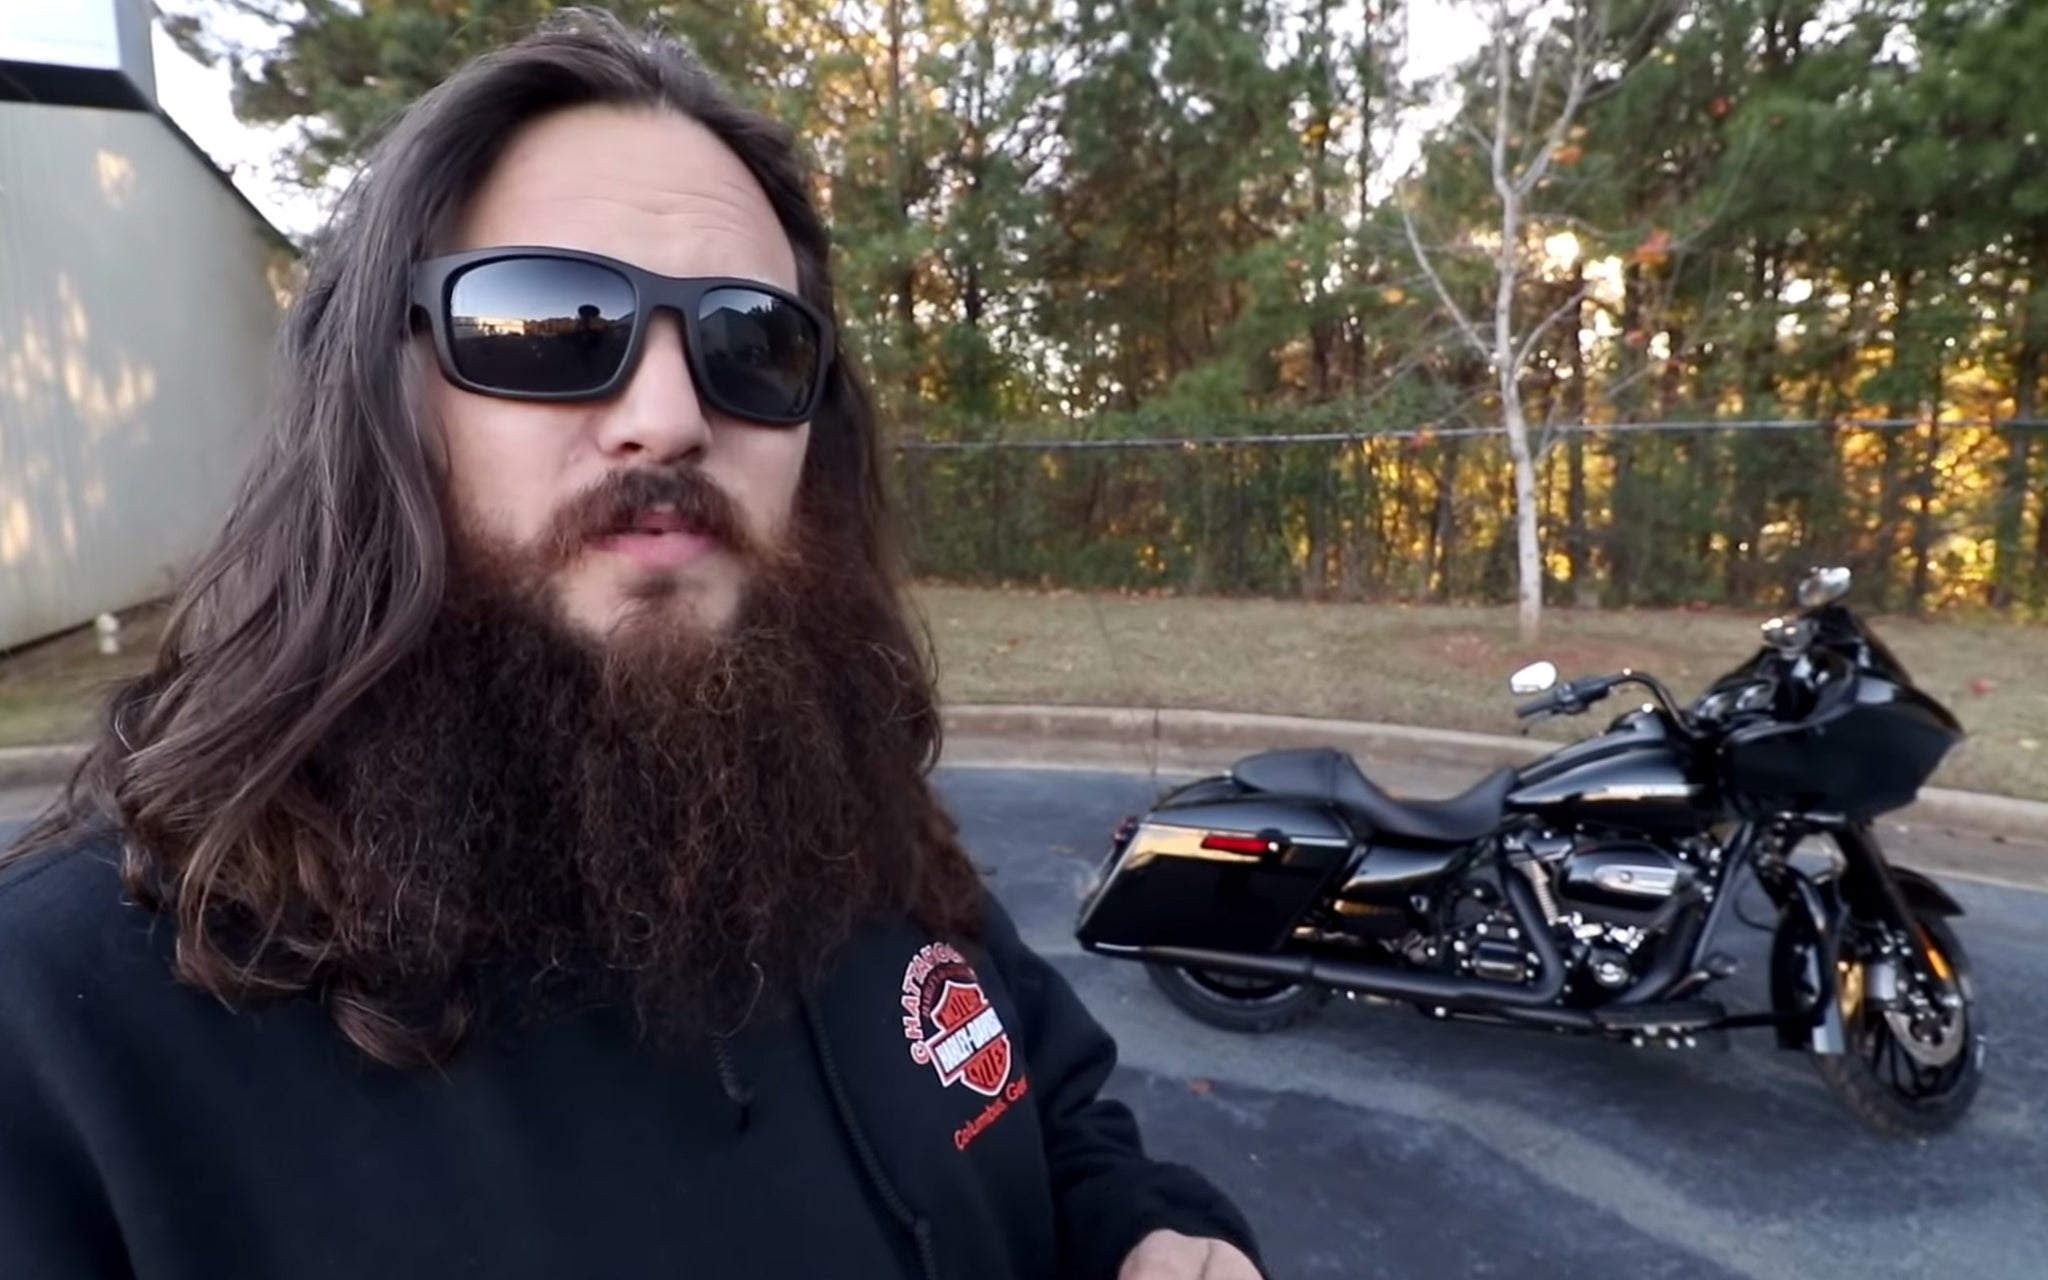 2019 Road Glide Special Kraus Handlebar Install And Test Ride With Kraus Motor Co